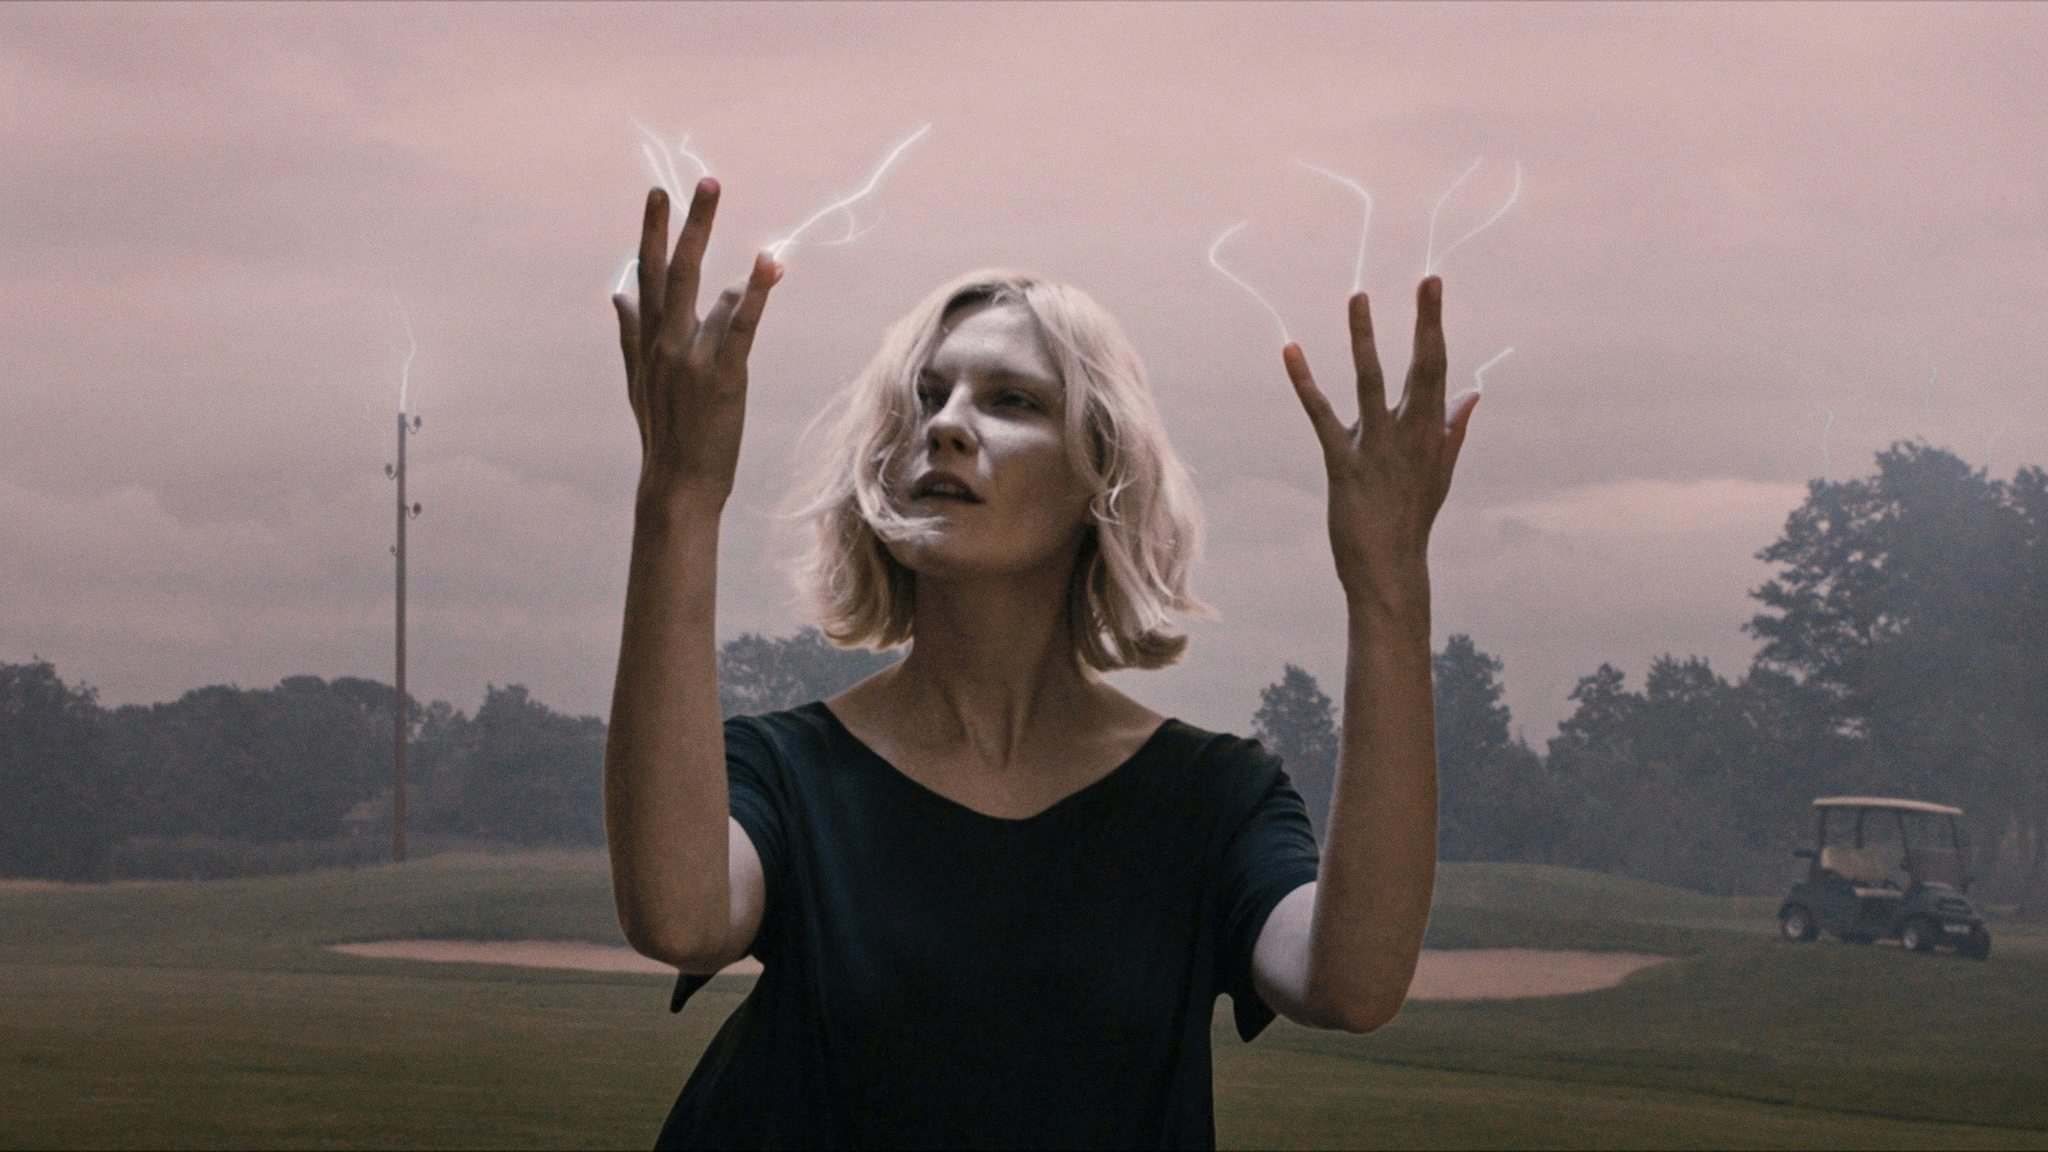 Kirsten Dunst portrays an emotionally fragile, self-destructive woman in Melancholia. (Magnolia Pictures)